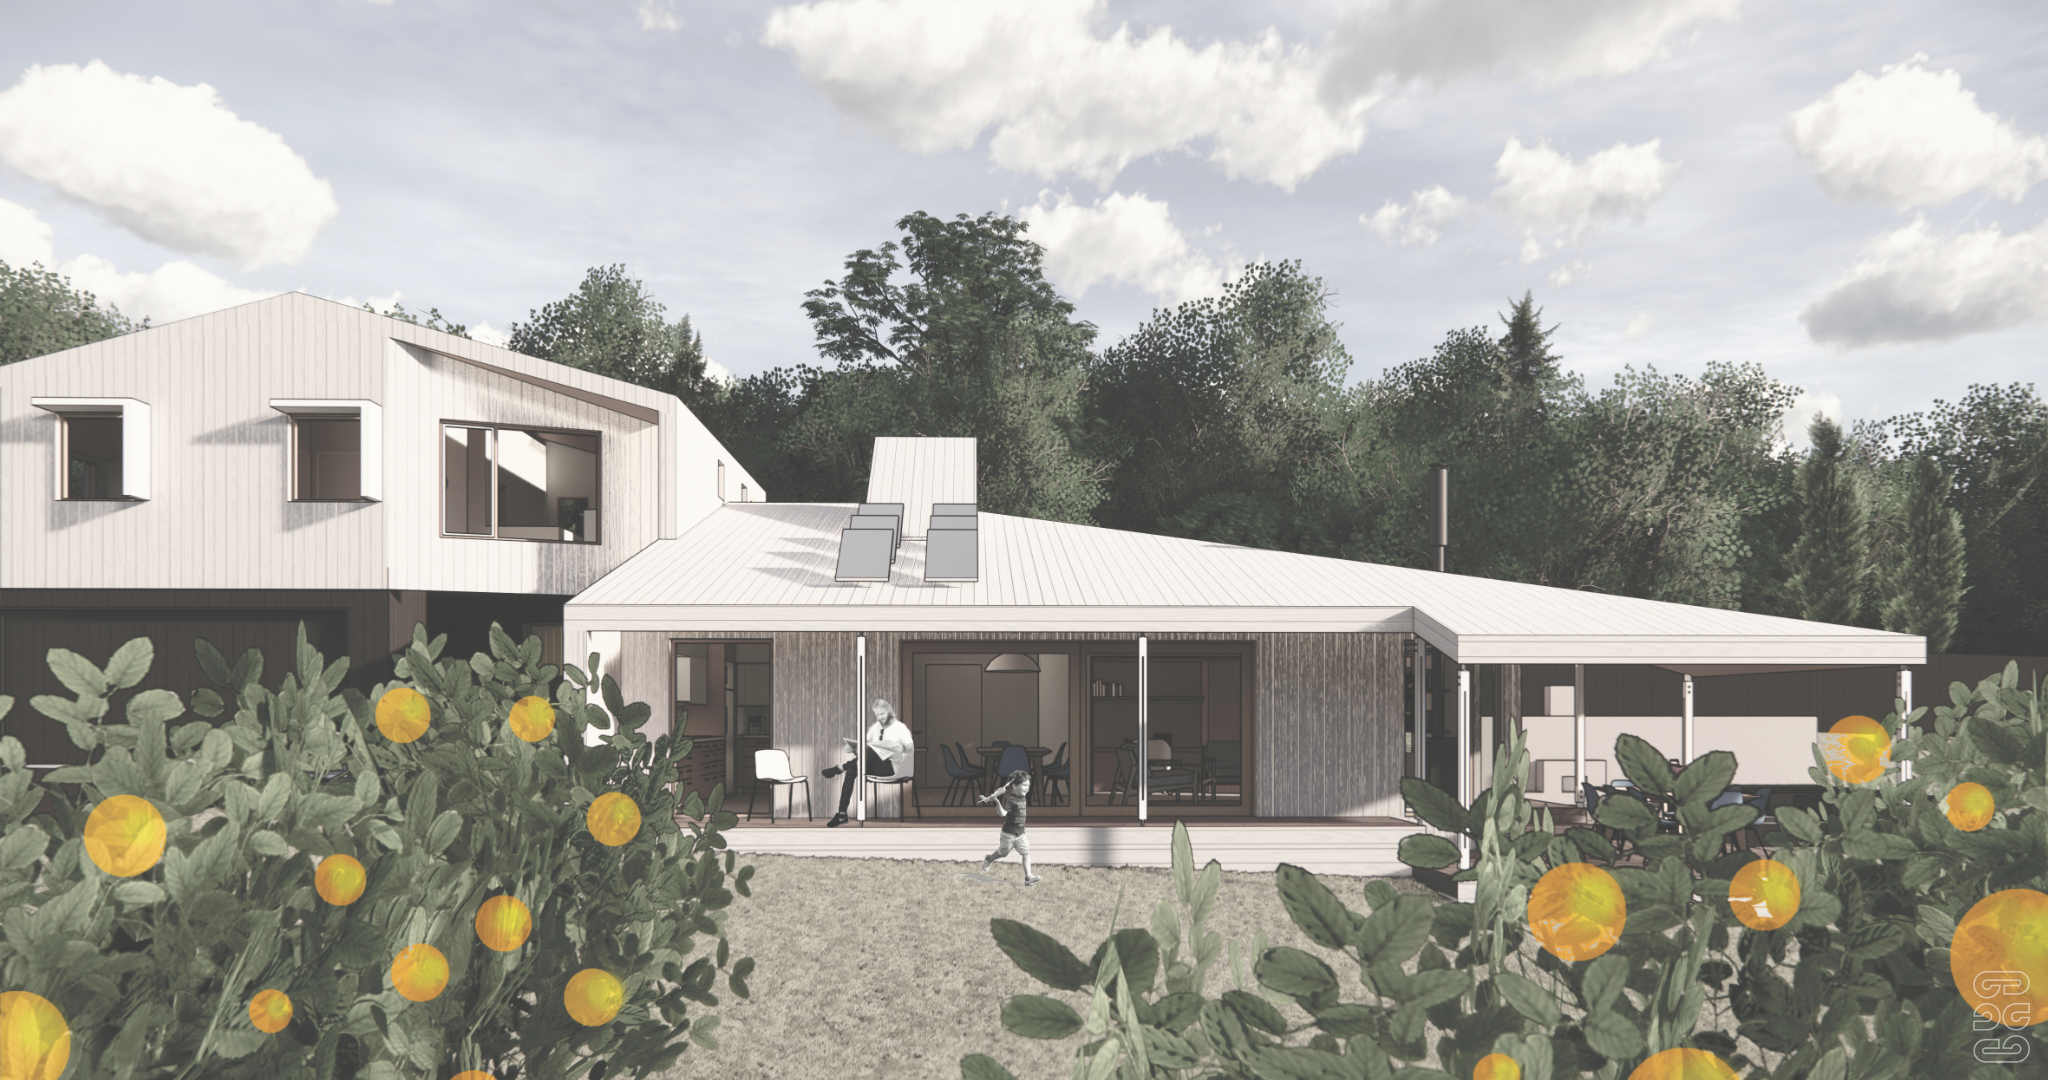 Taupo Passive House - 3D View 01.jpg